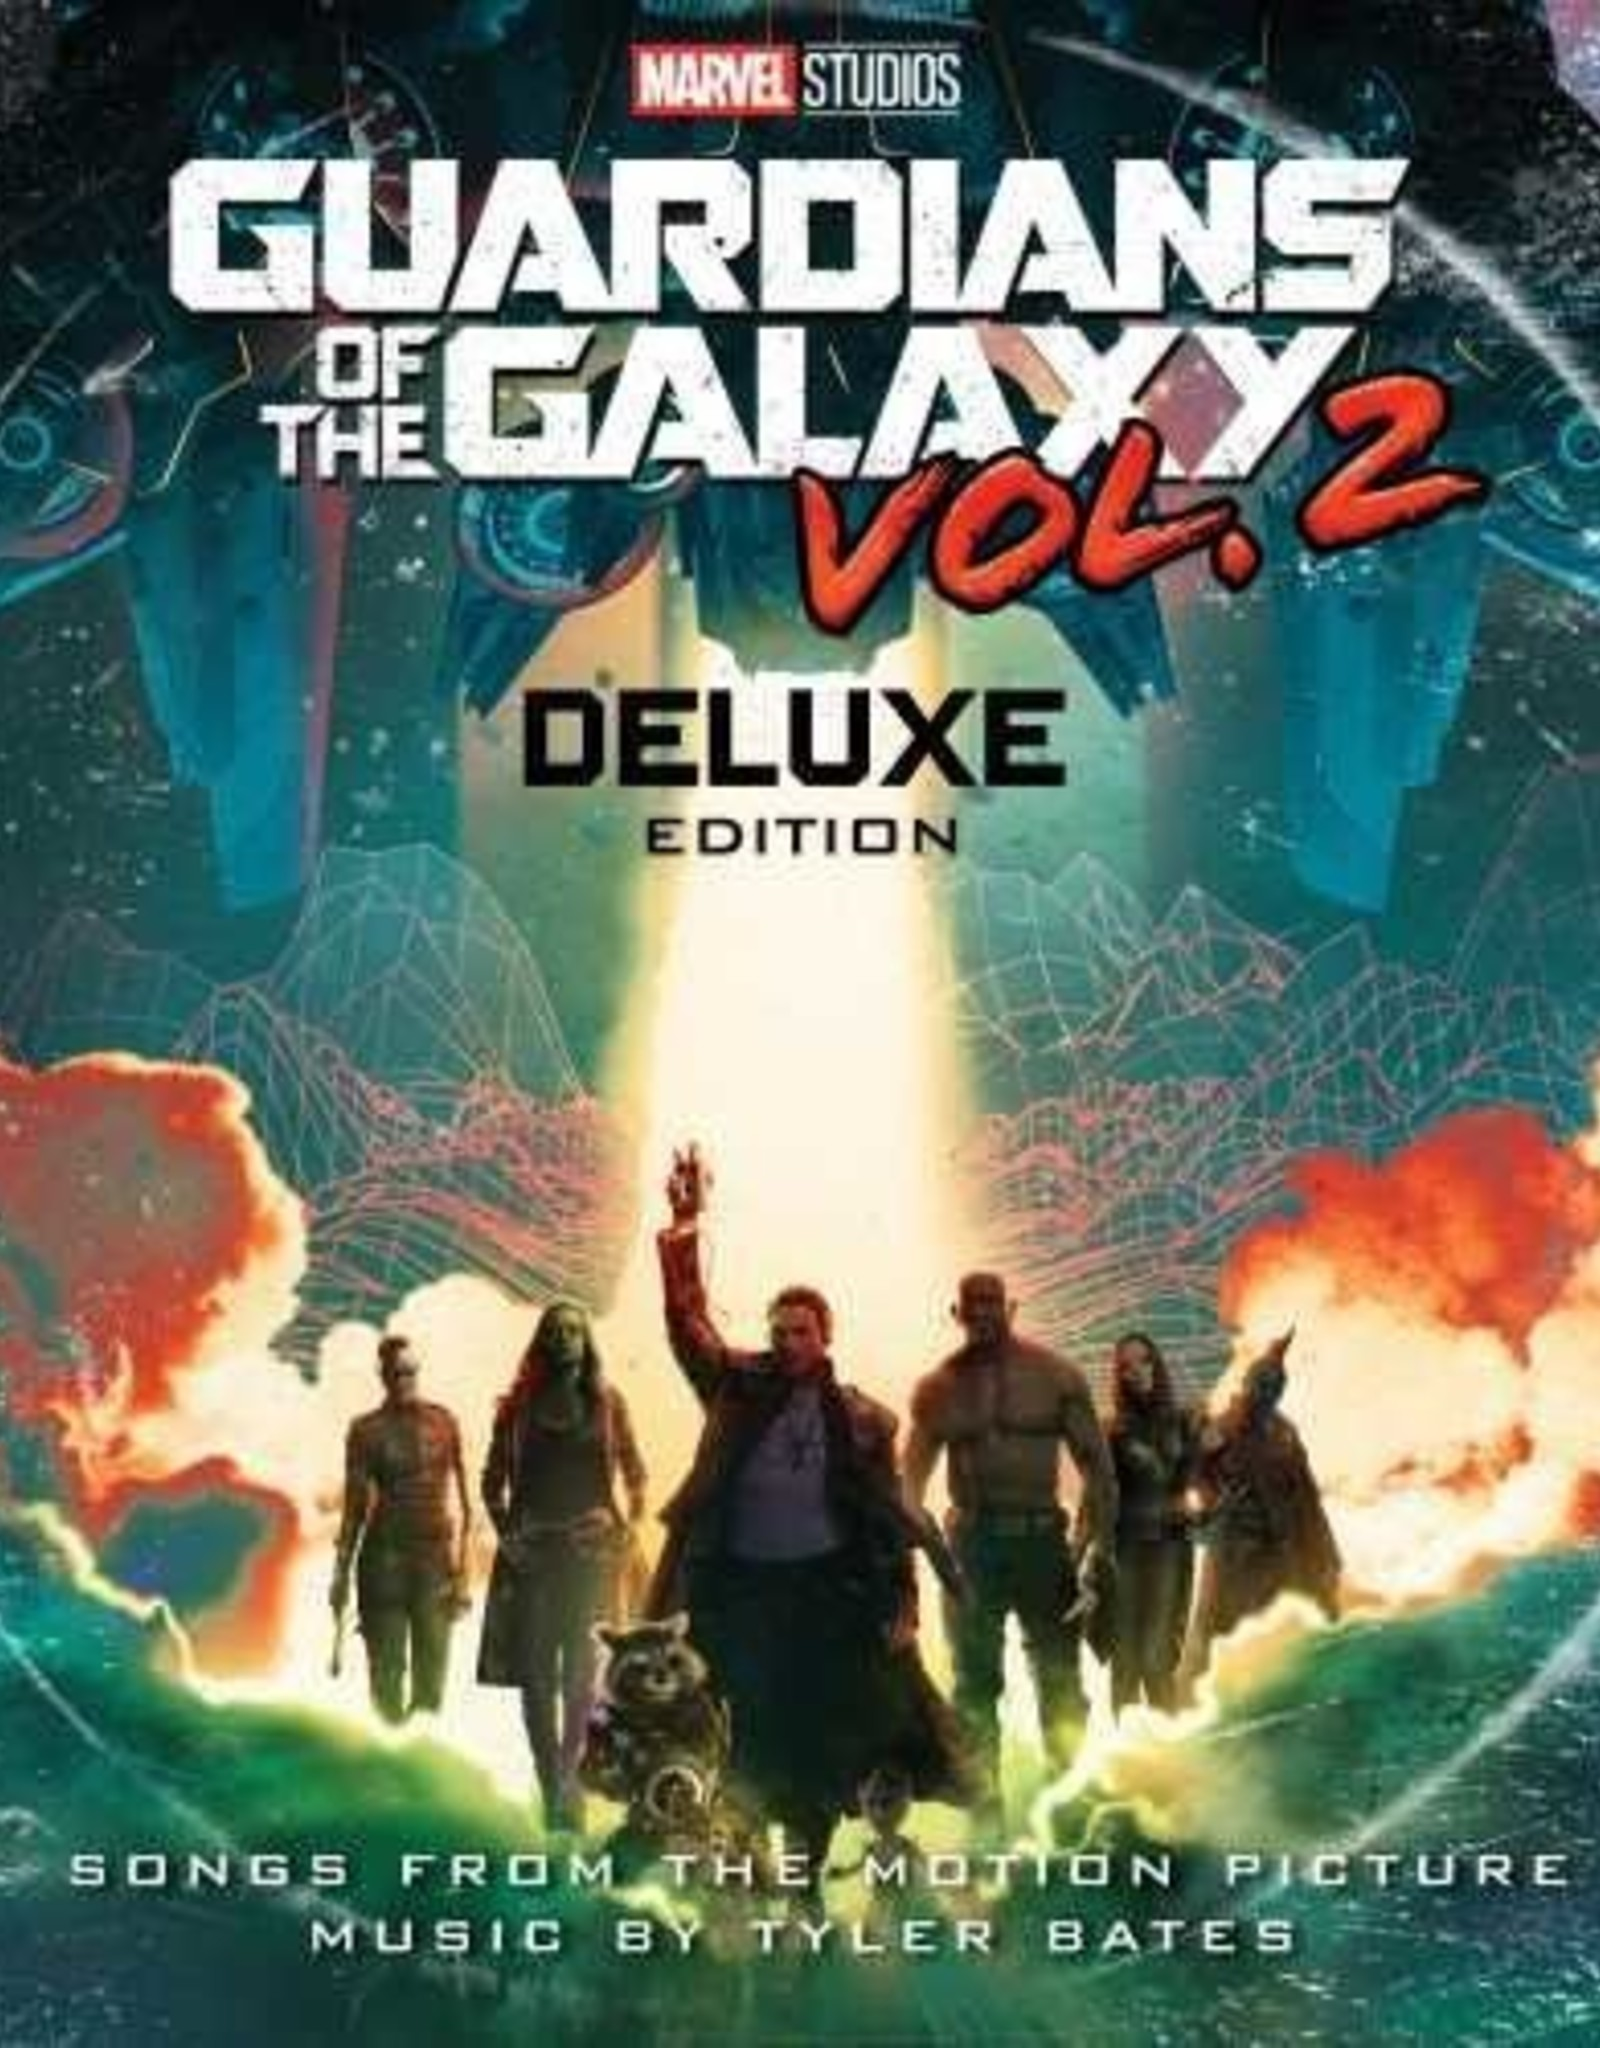 Guardians of the Galaxy, Vol. 2 (Songs From the Motion Picture) (Deluxe Edition)